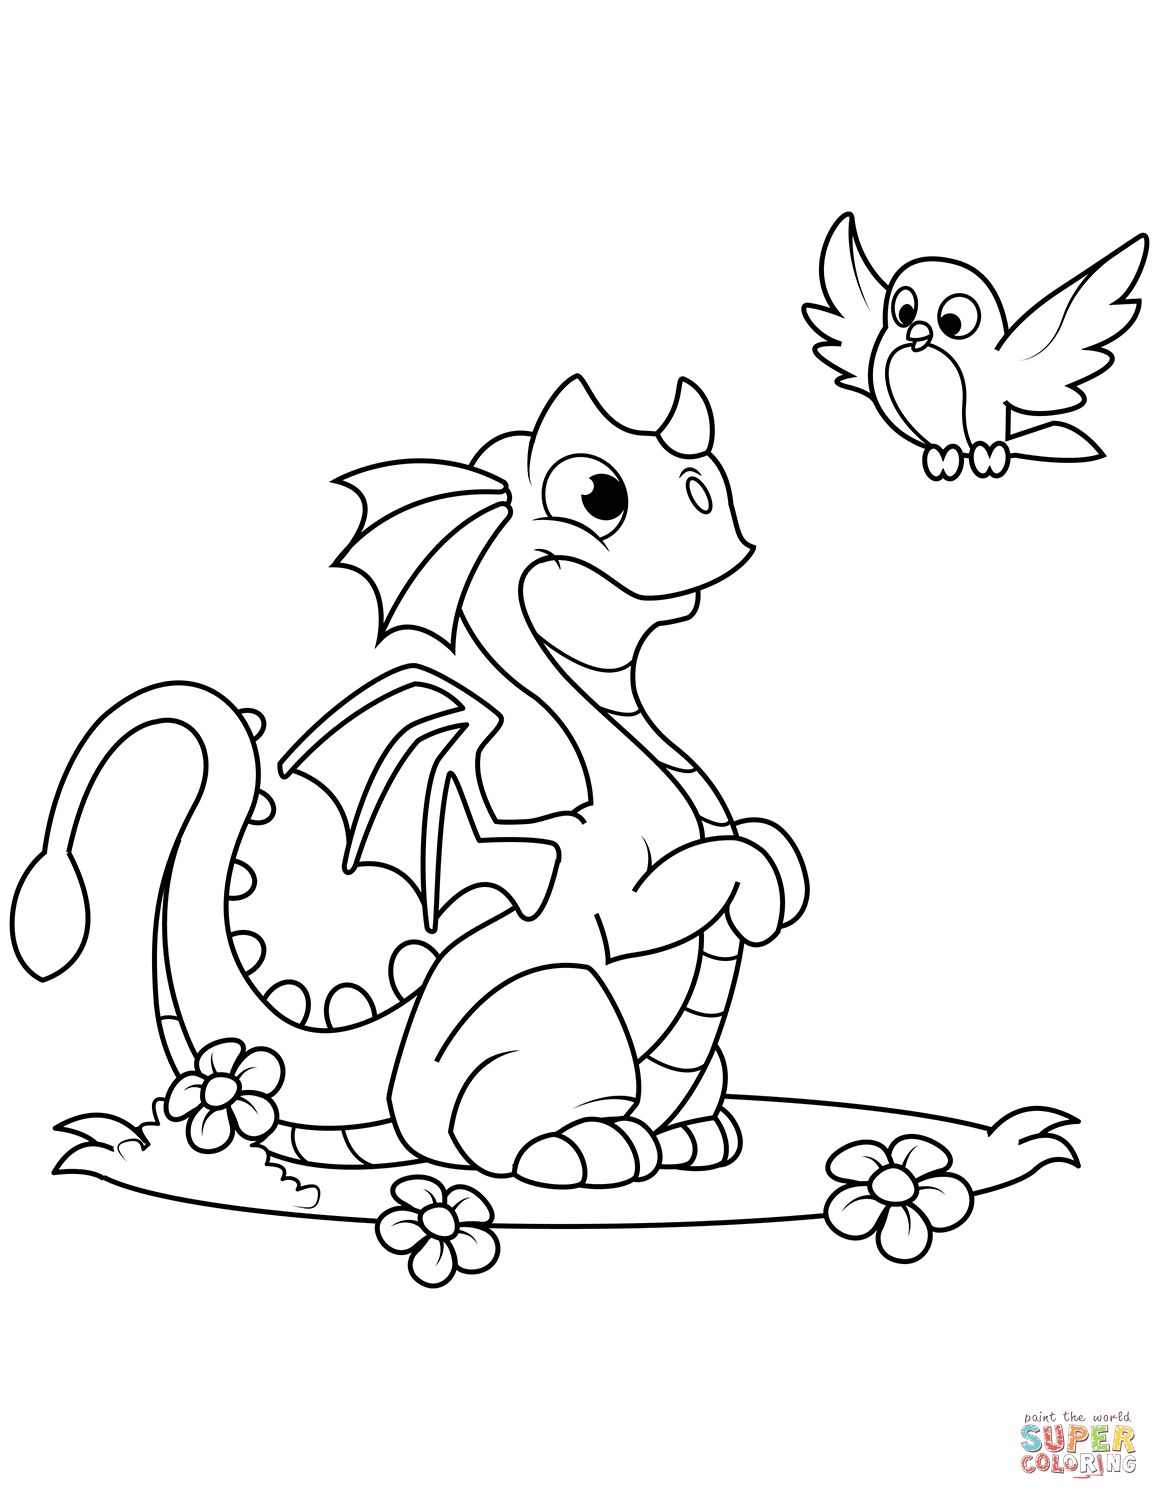 Cute Dragon And Bird Coloring Page